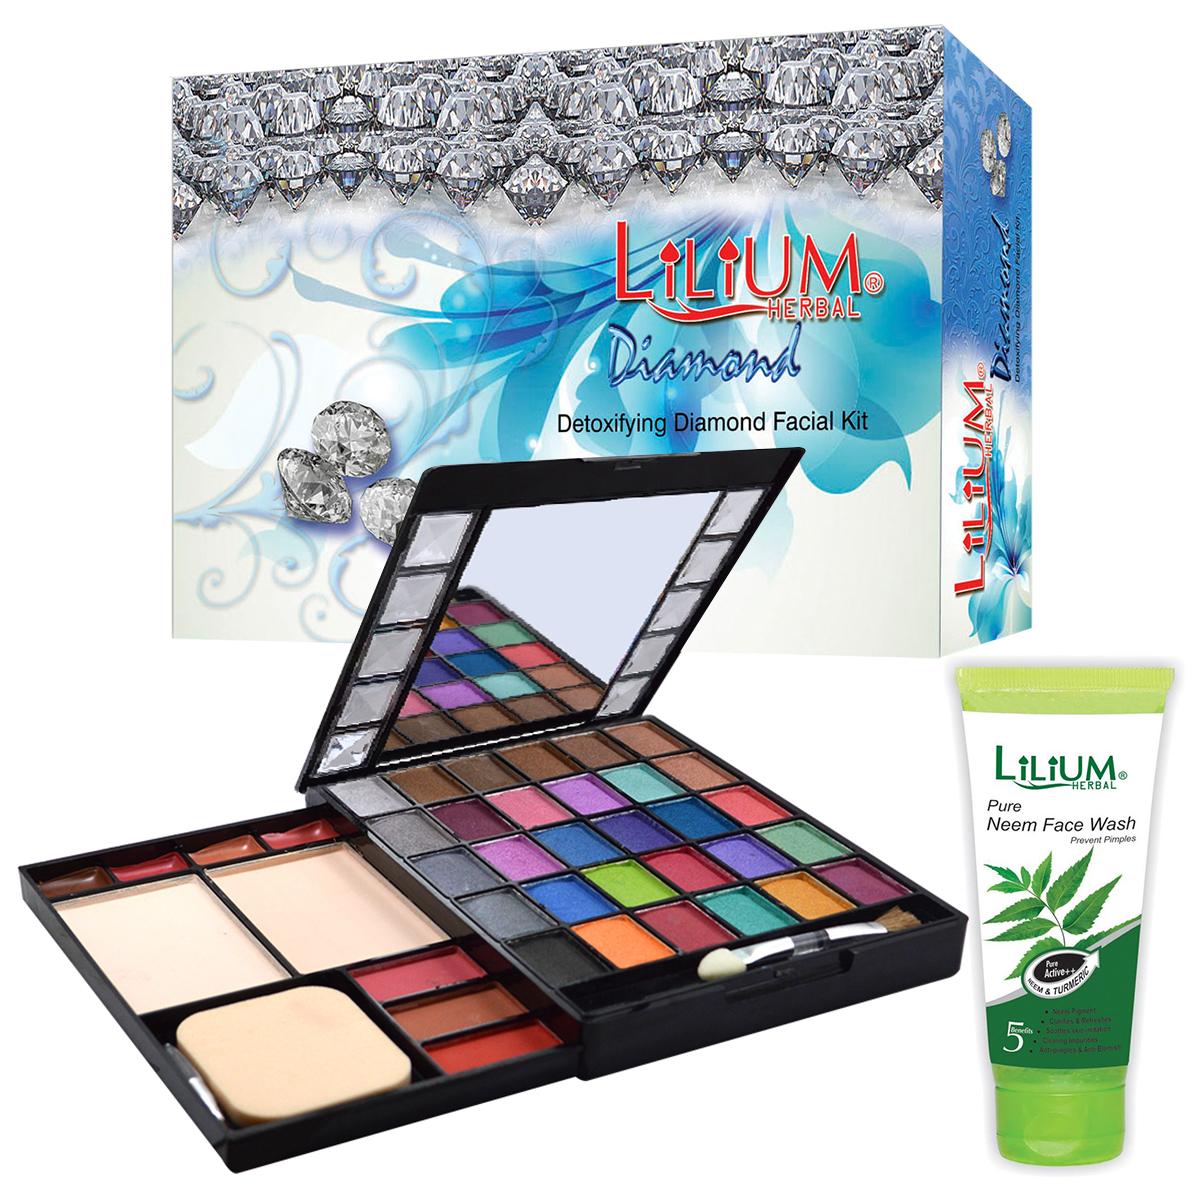 Lilium Diamond Facial Kit With Makeup Kit, GCI792